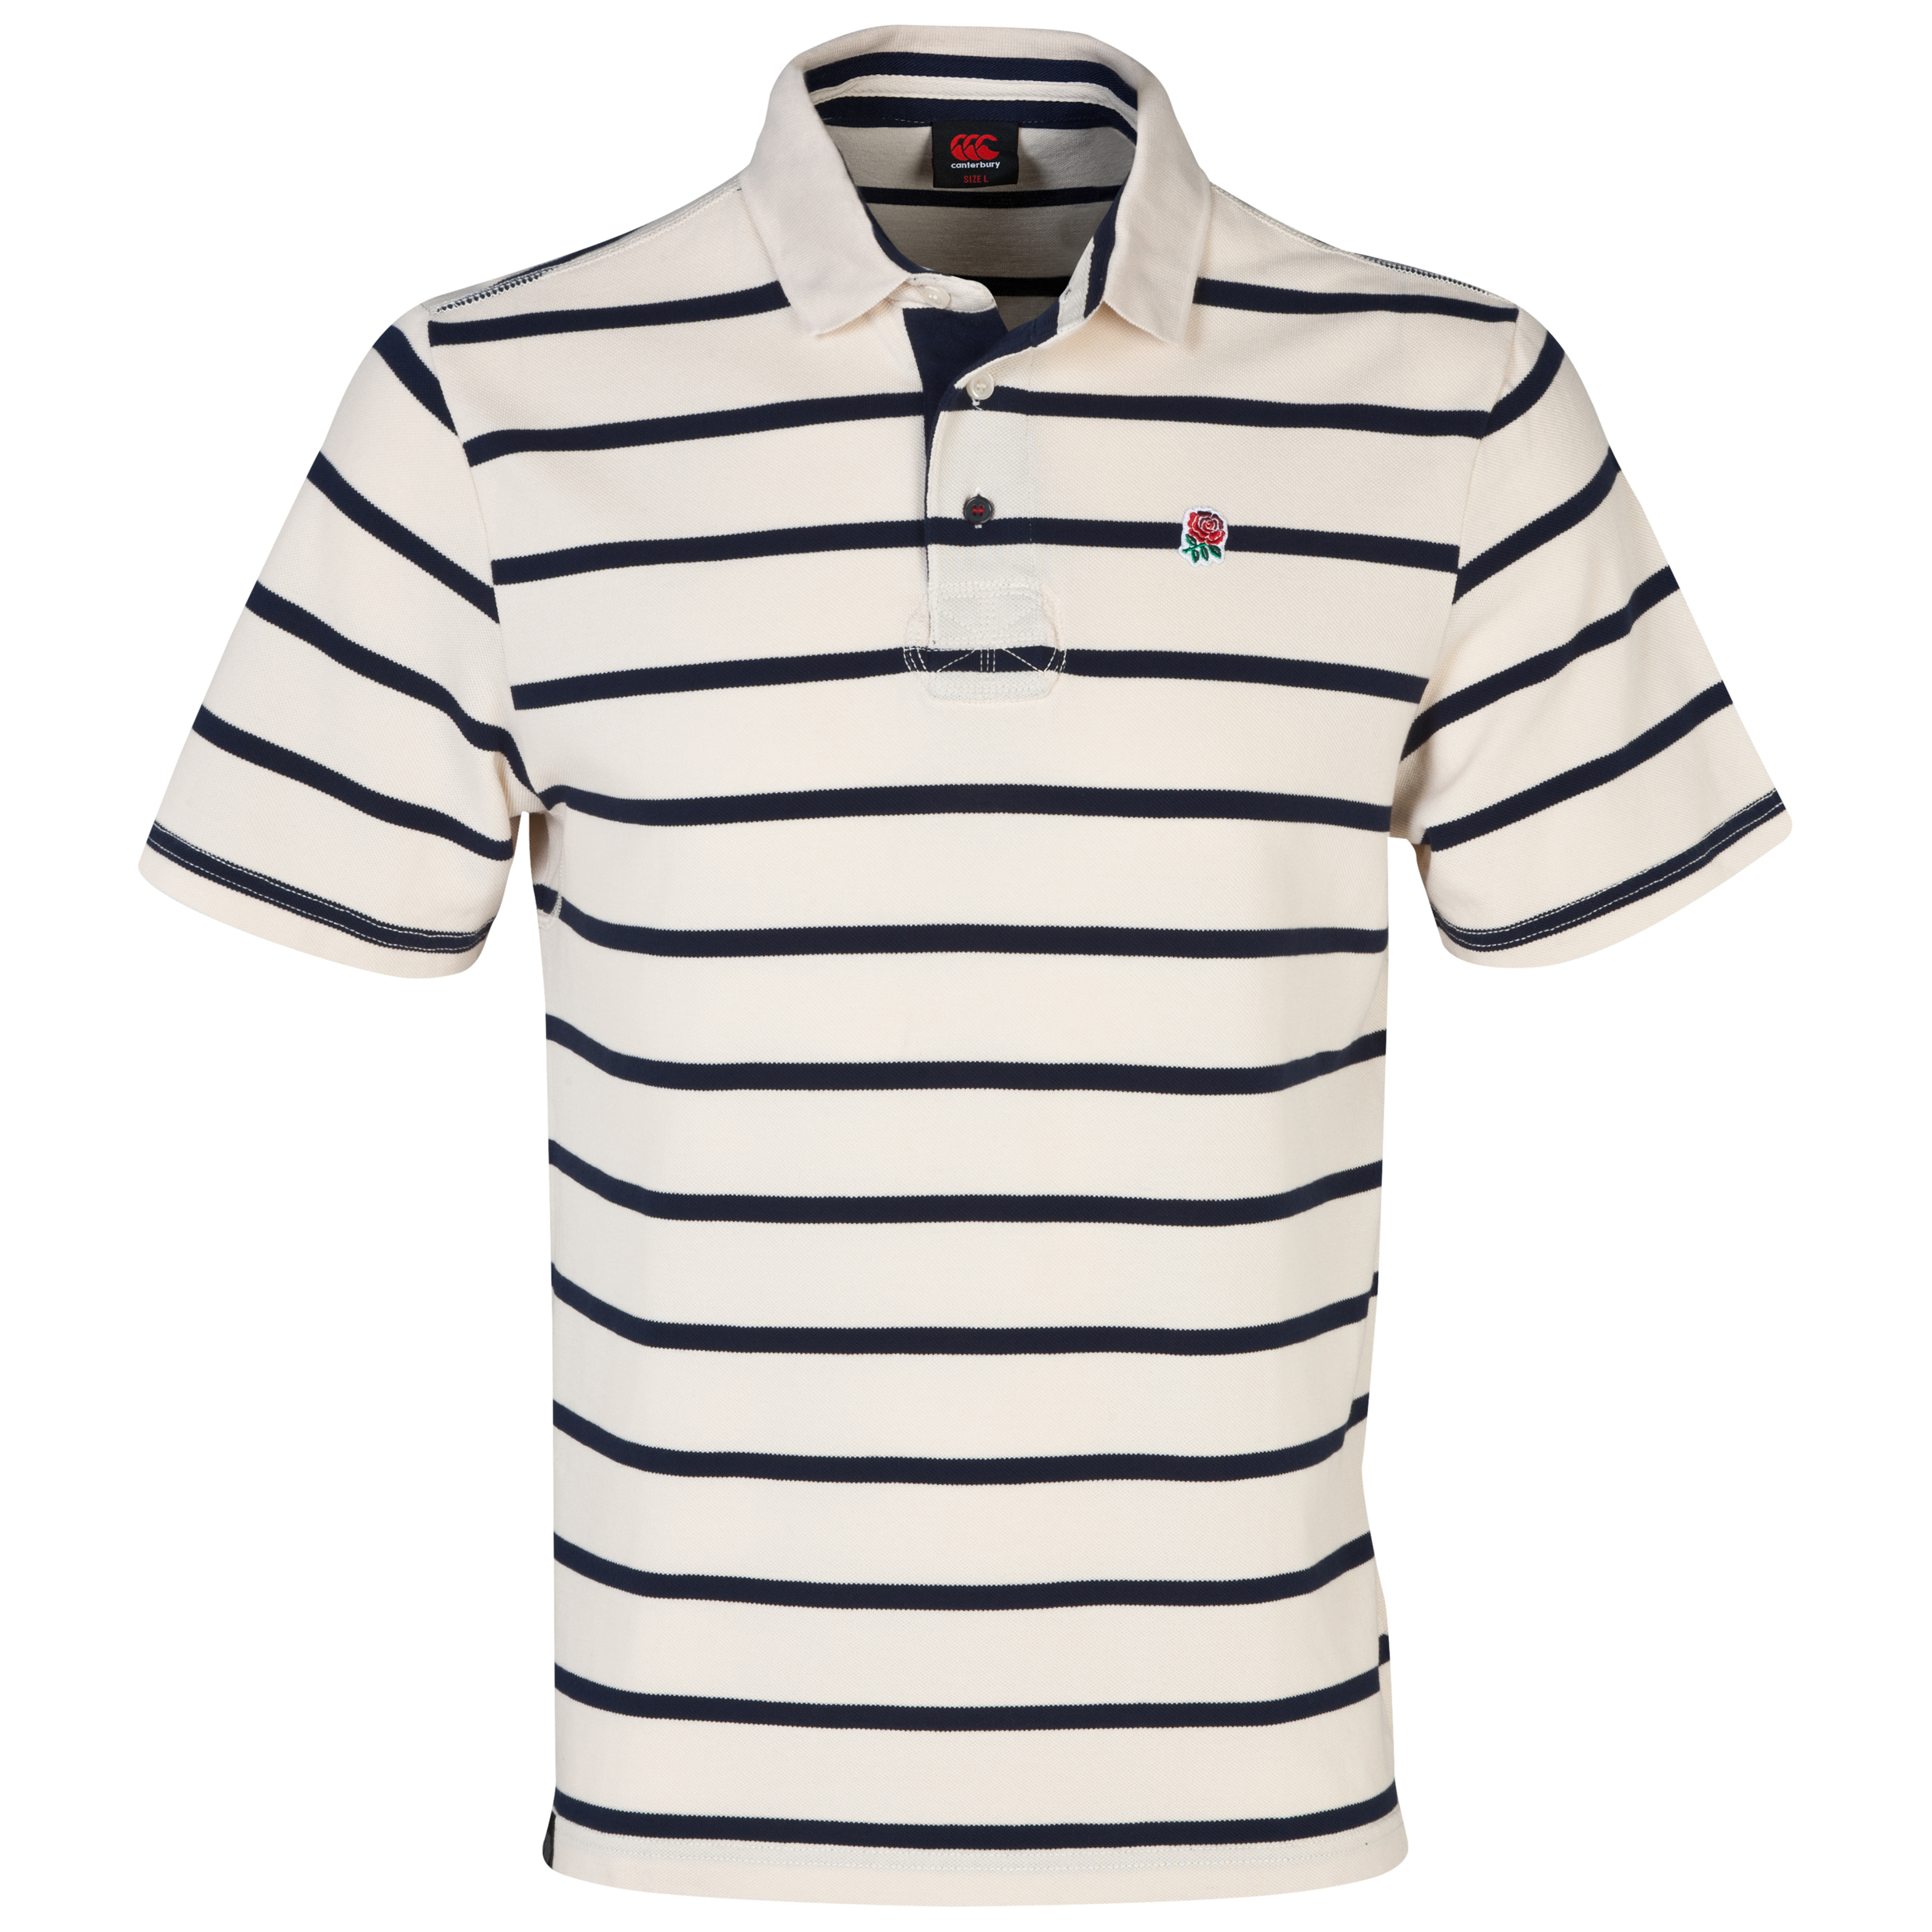 England Lifestyle Striped Polo - Standard Ecru Cream